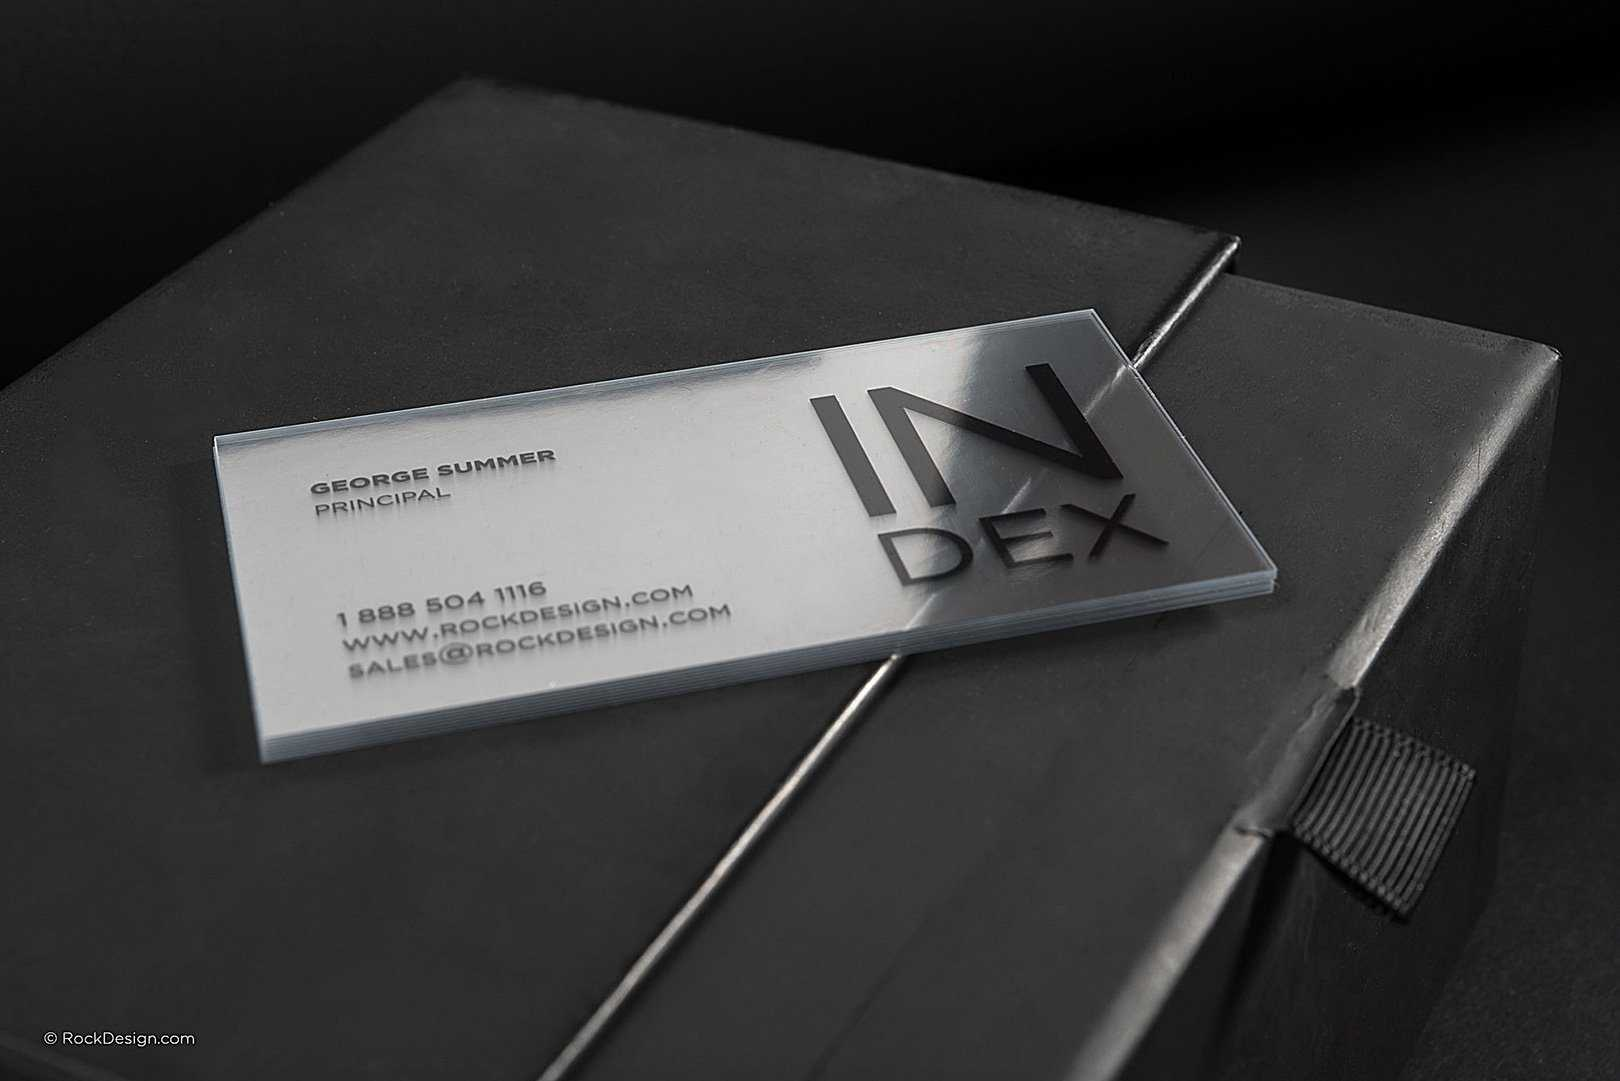 Over 100 Free Online Unique Templates | Rockdesign With Transparent Business Cards Template